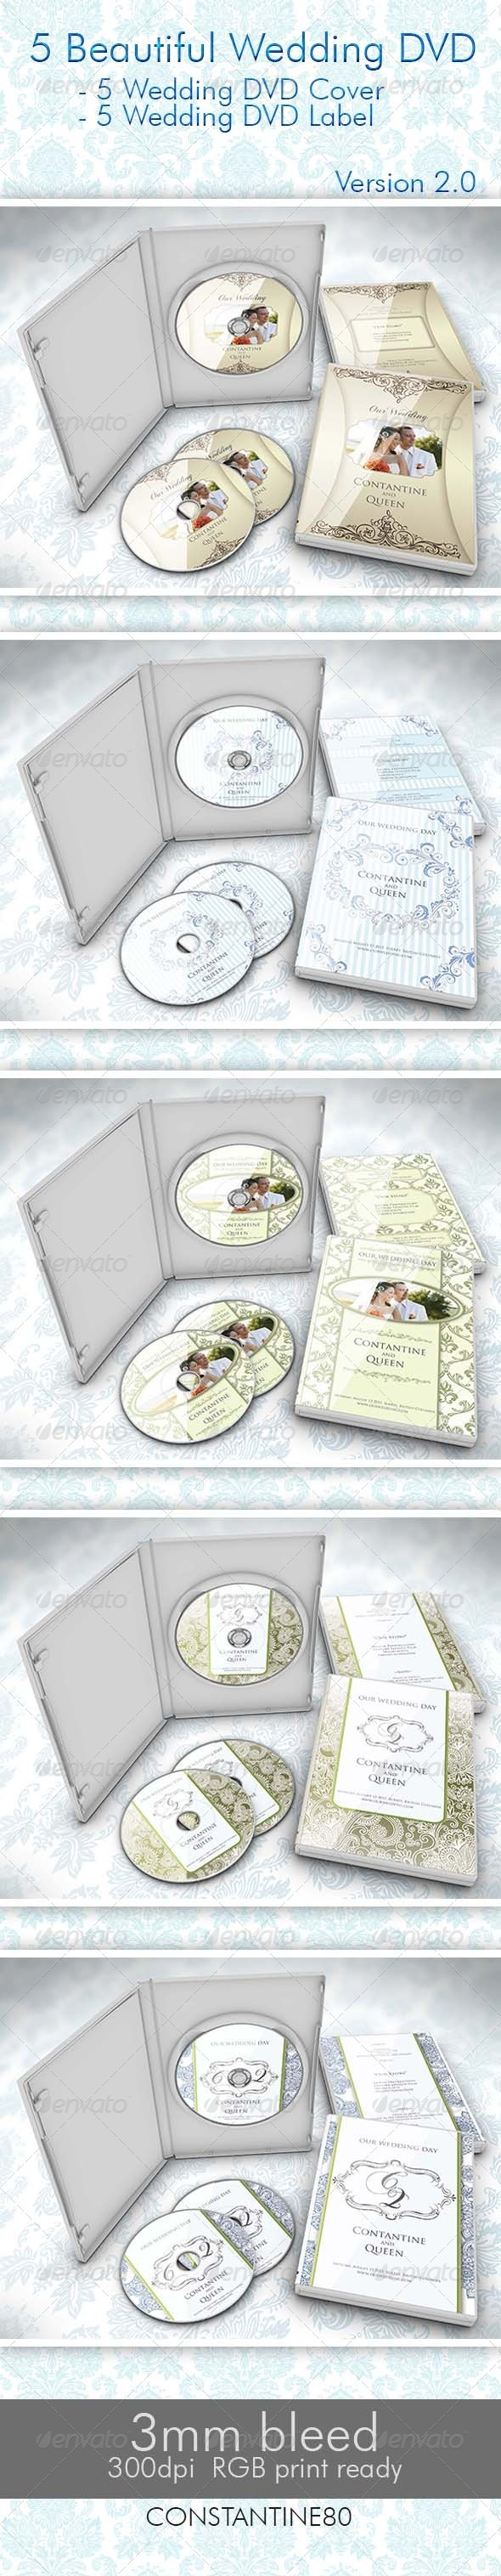 GraphicRiver 5 Beautiful Wedding DVD Ver 2.0 2693366